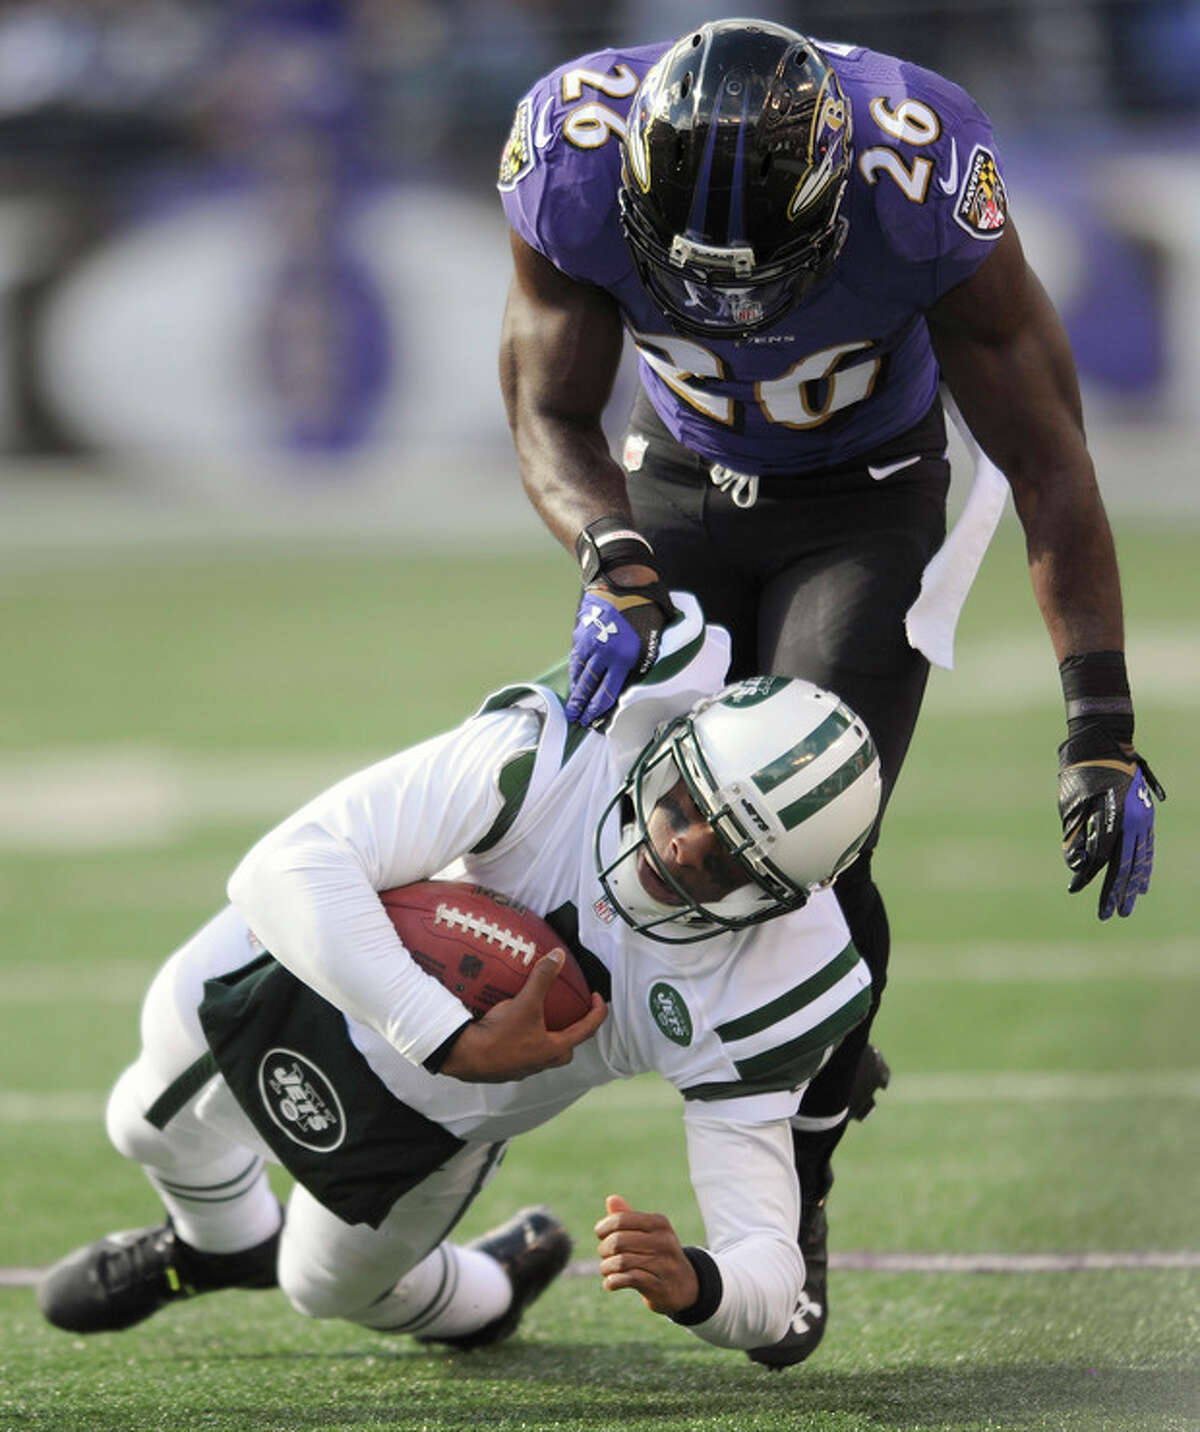 Baltimore Ravens free safety Matt Elam, top, sacks New York Jets quarterback Geno Smith during the first half of an NFL football game in Baltimore, Sunday, Nov. 24, 2013. (AP Photo/Gail Burton)